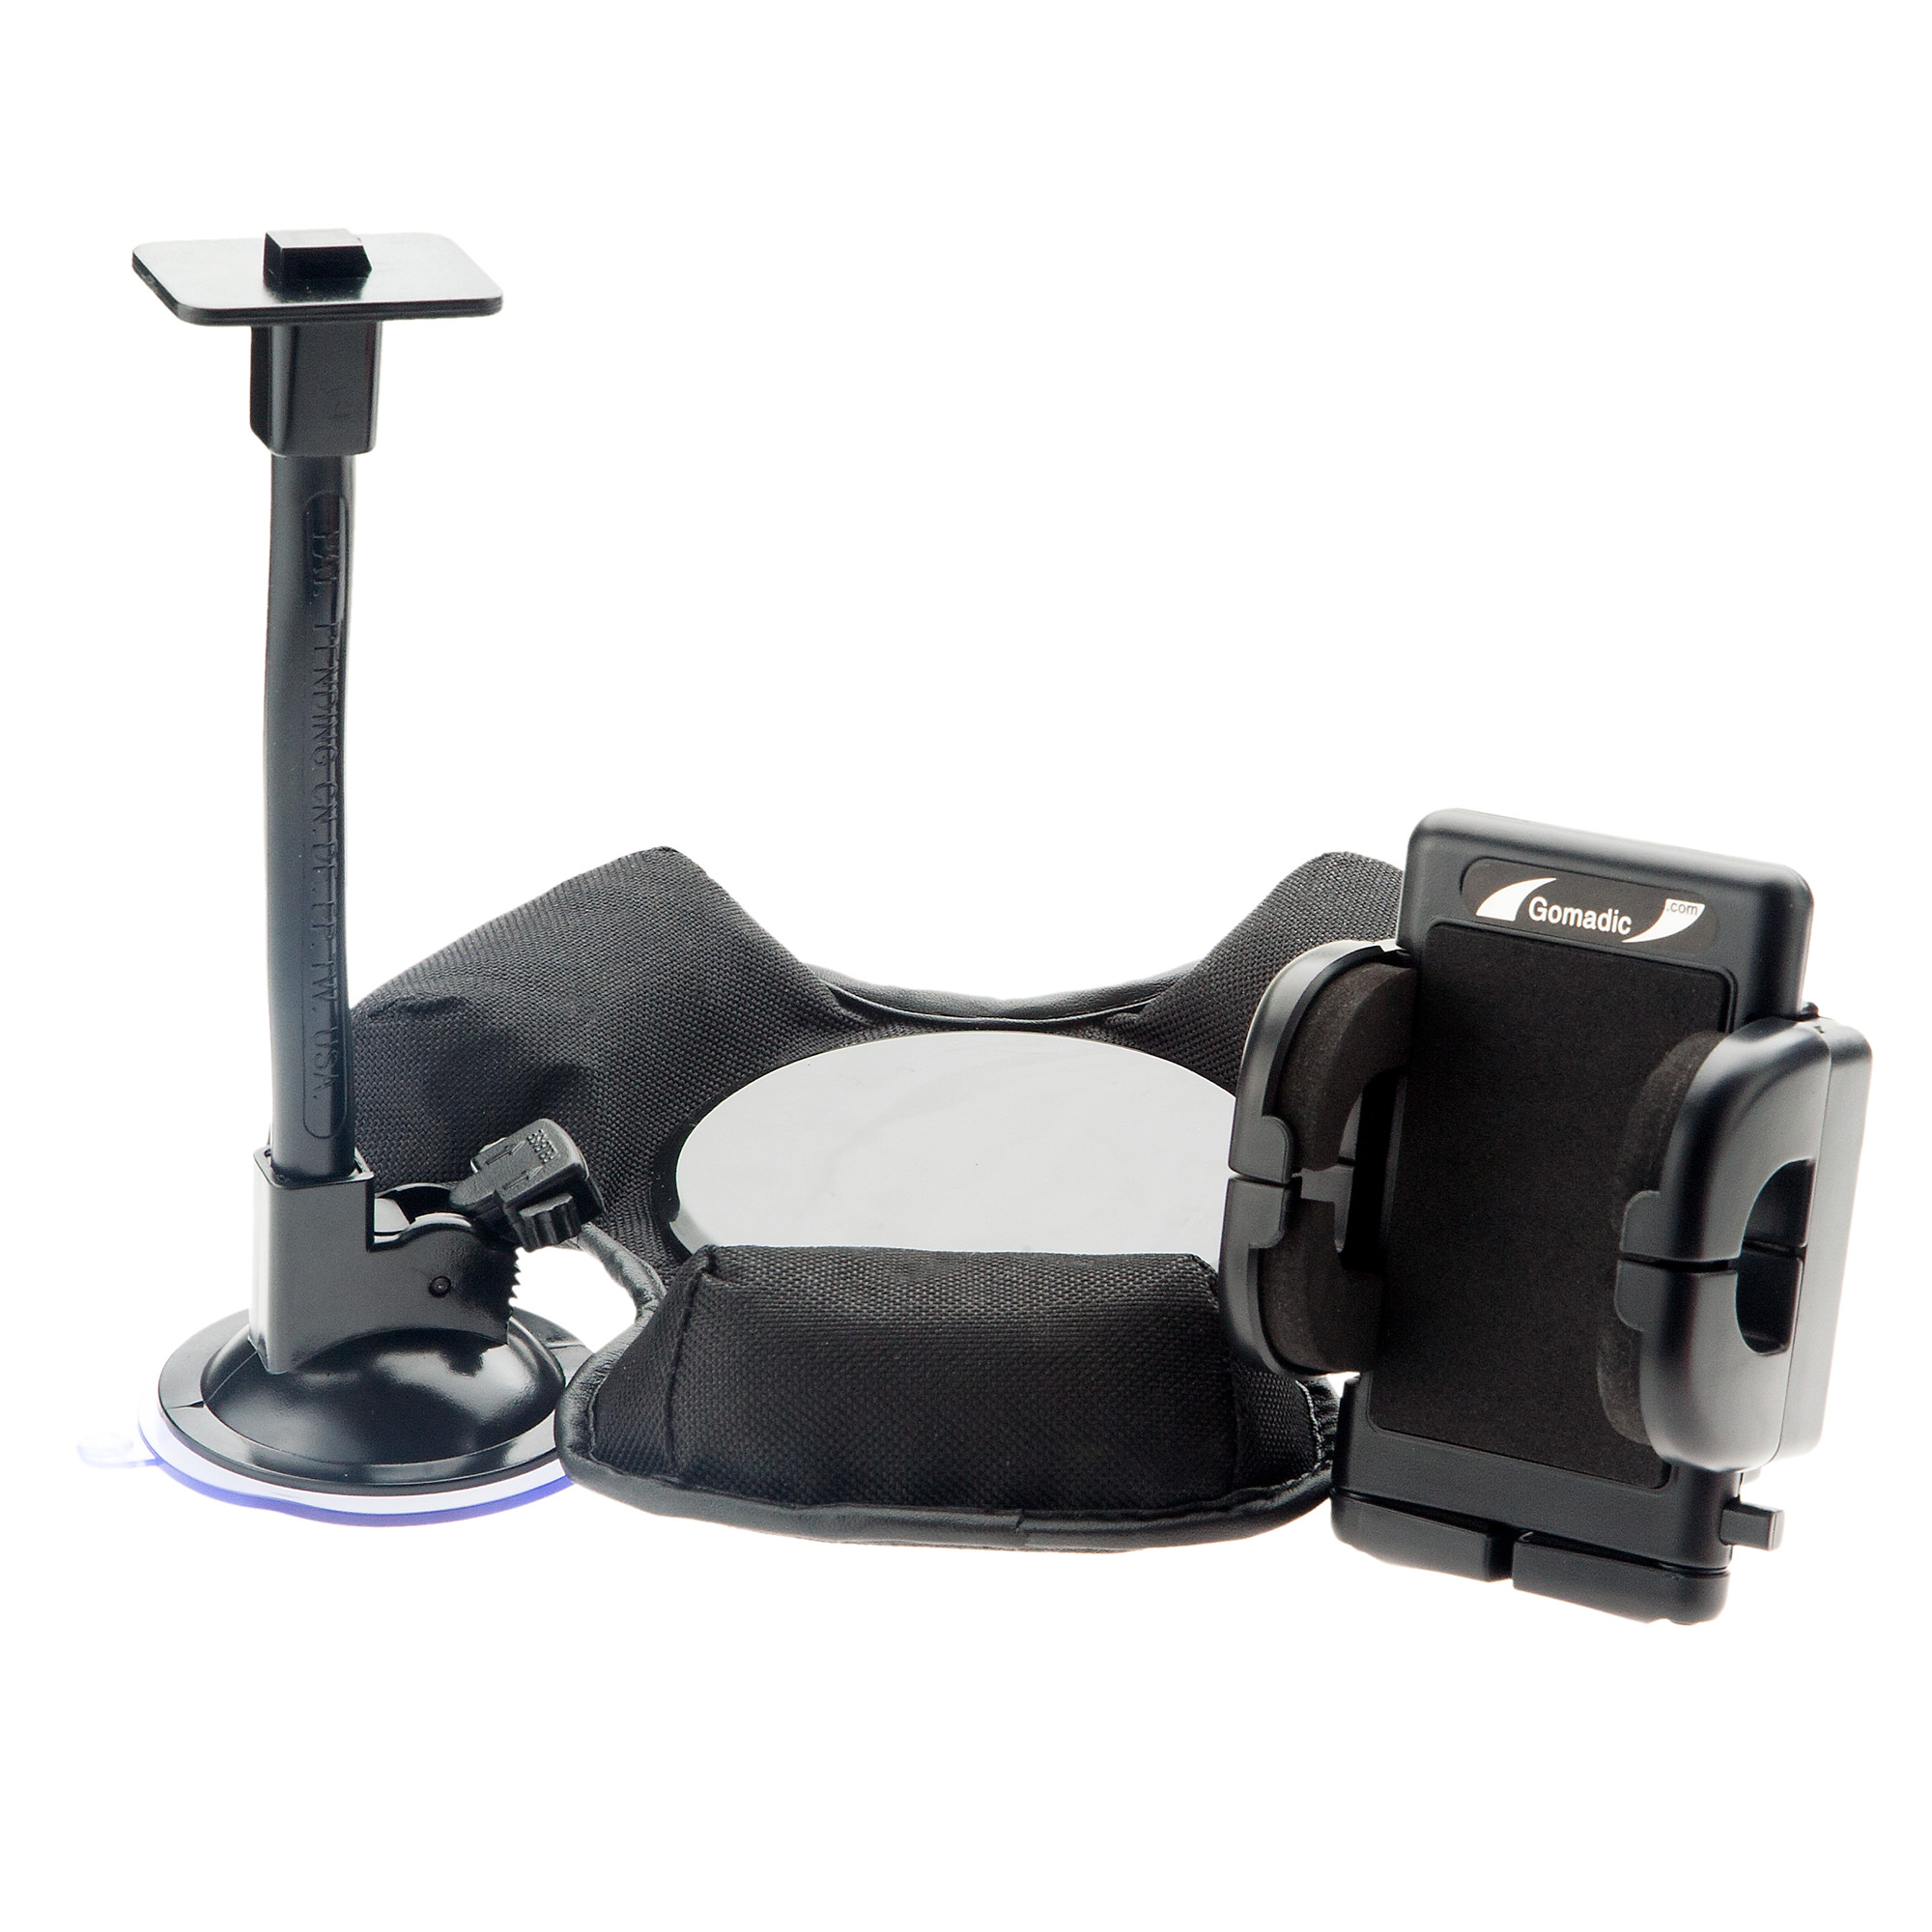 Car / Truck Vehicle Holder Mounting System for HTC Titan Includes Unique Flexible Windshield Suction and Universal Dashboard Mount Options